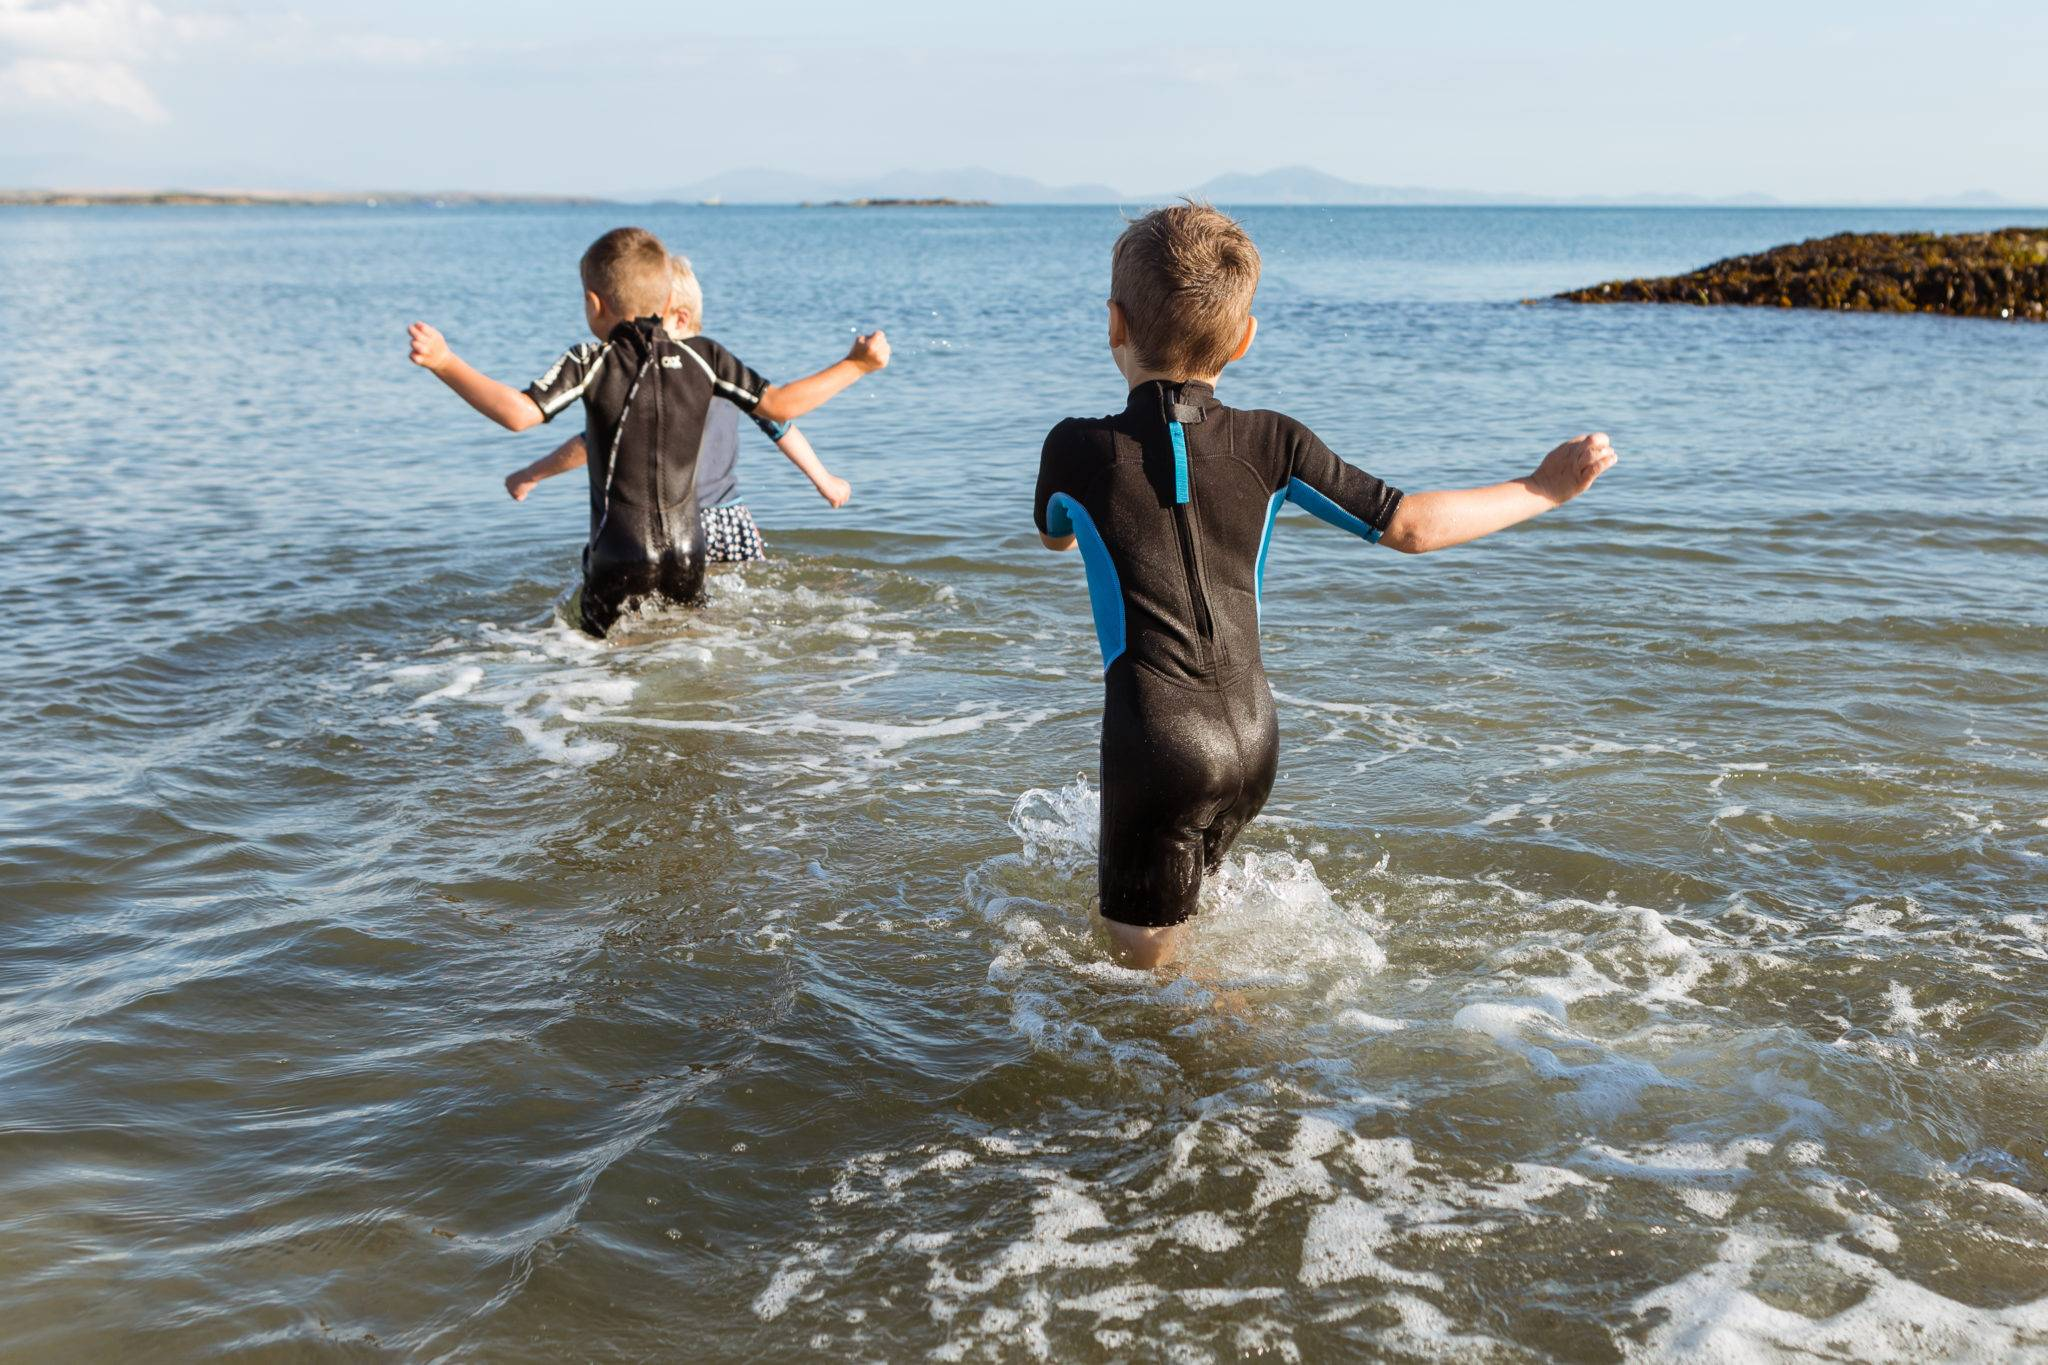 https://silverbay.co.uk/wp-content/uploads/2016/12/silver-bay-holiday-village-anglesey-busy-bayers-run-ocean-water-fun.jpg